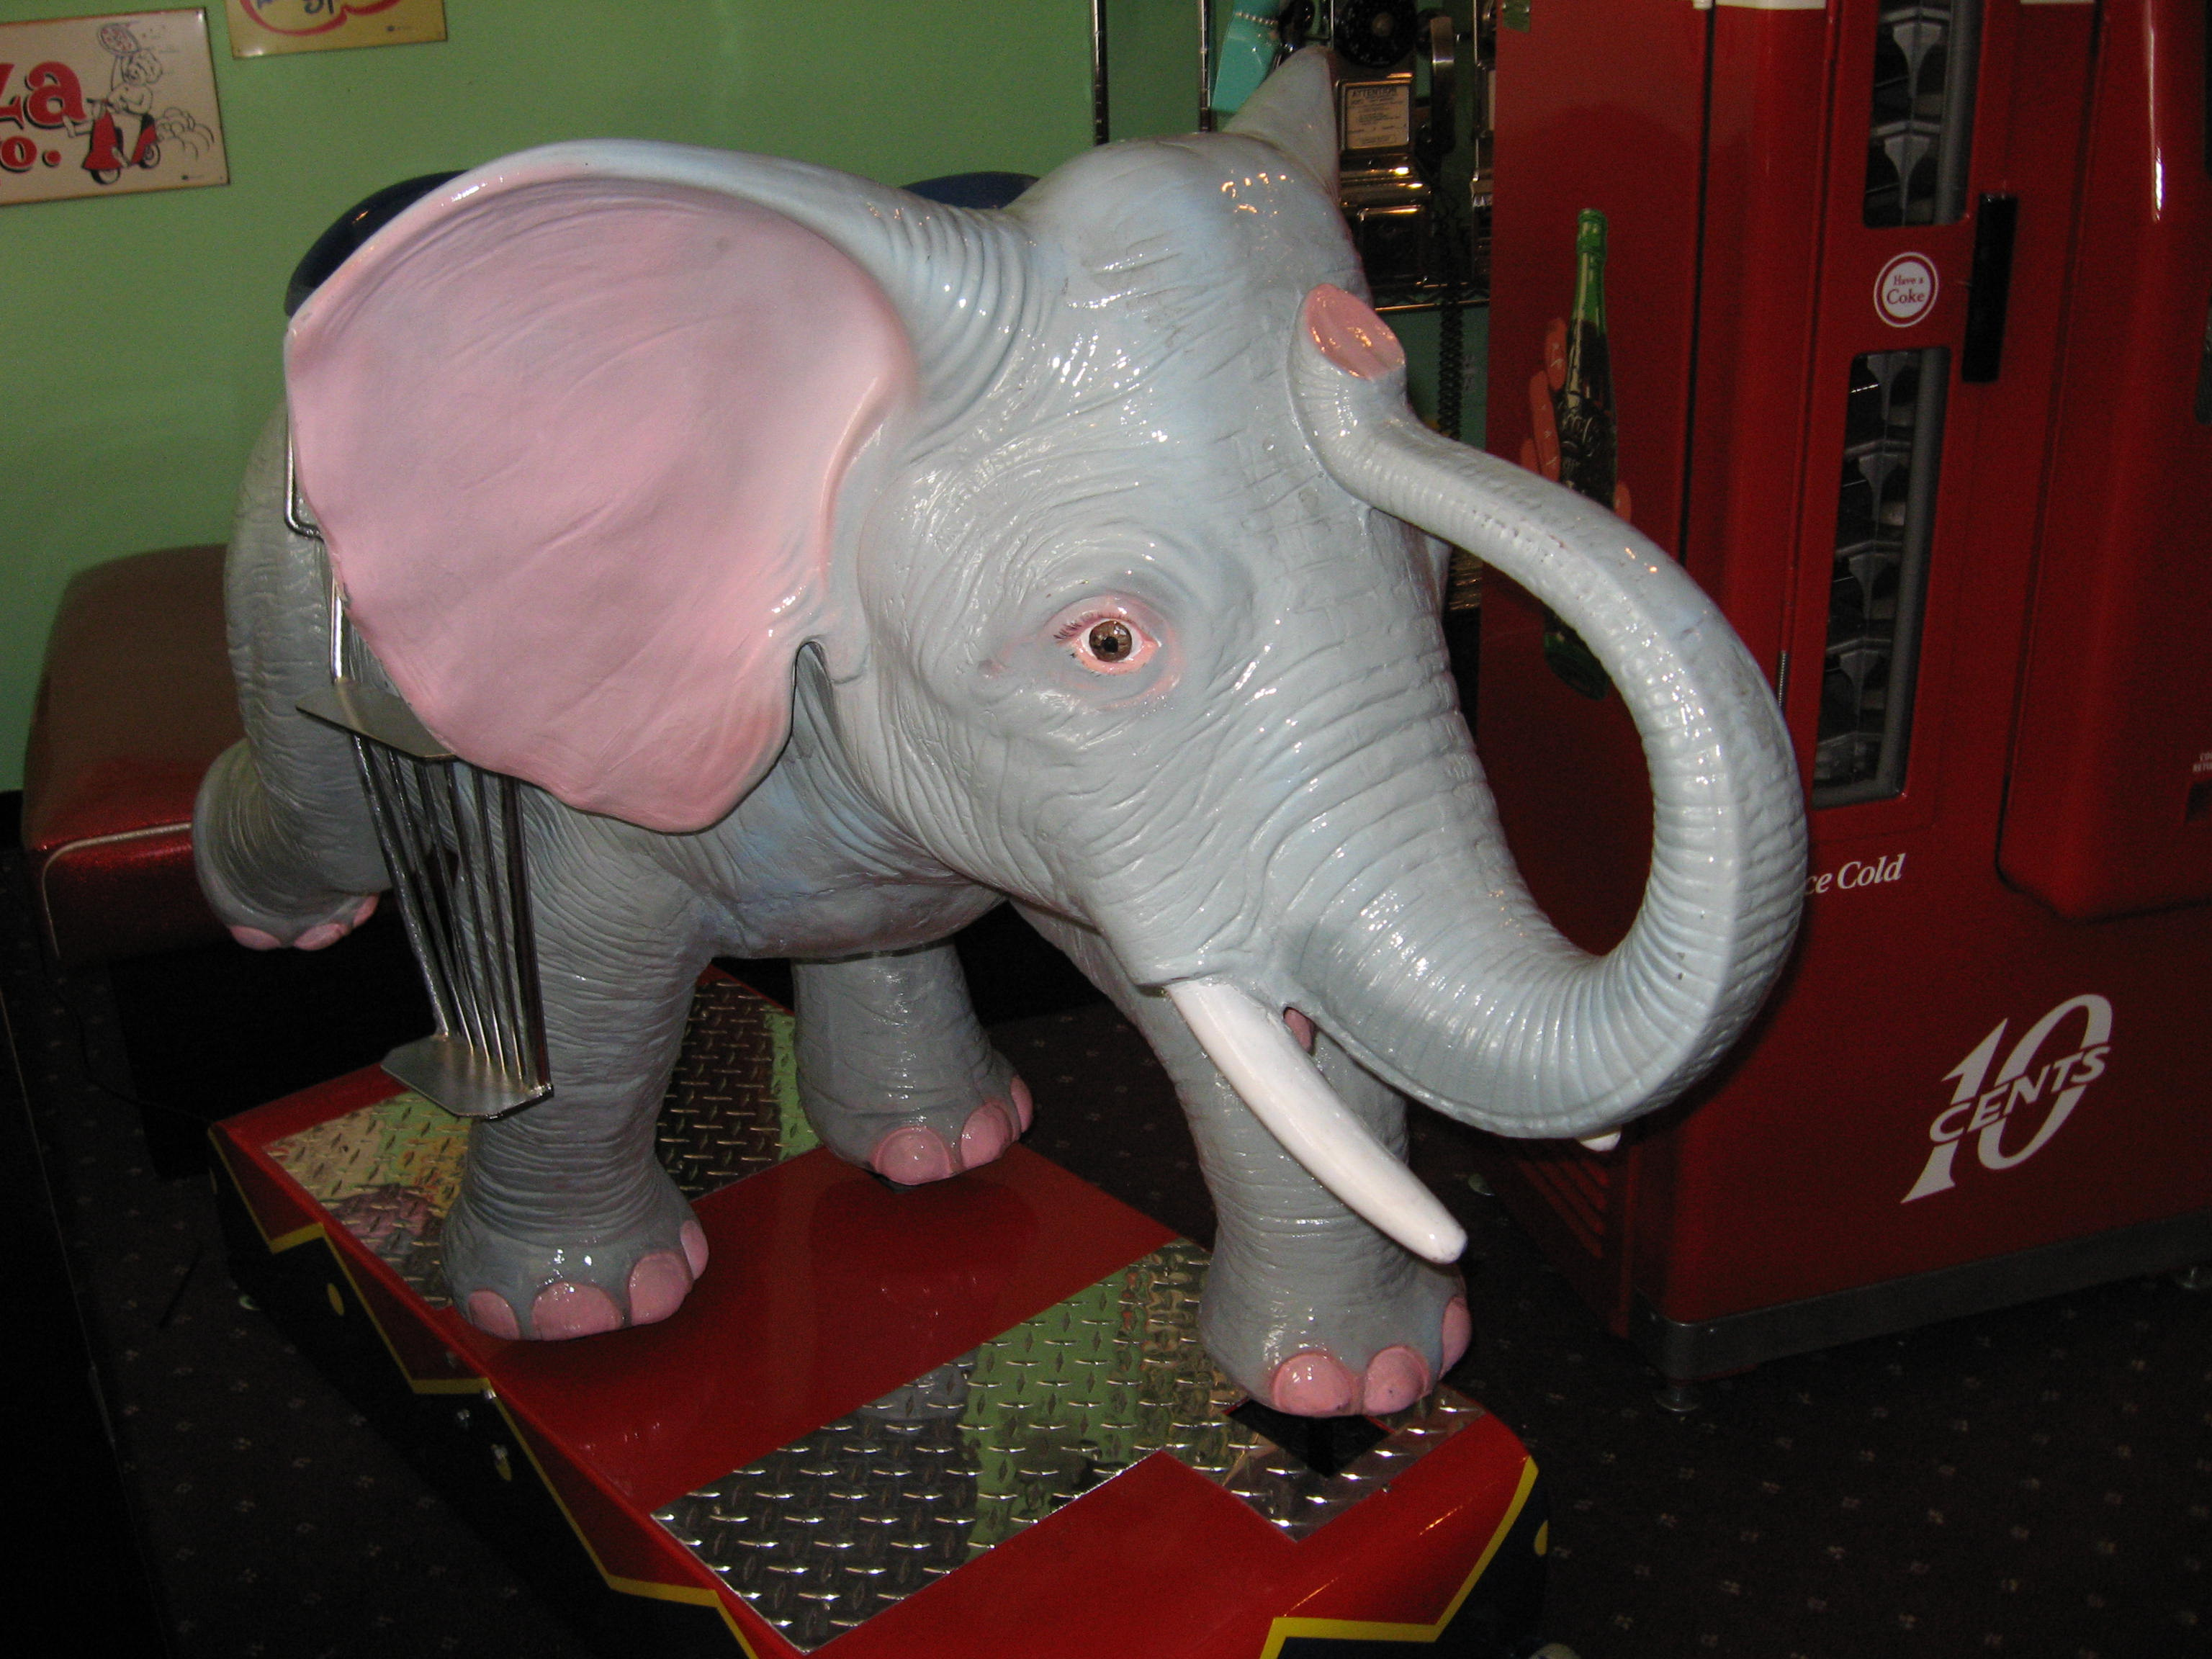 50's kitchen table and chairs facets elephant kiddie ride: coin operated, restored, original ...